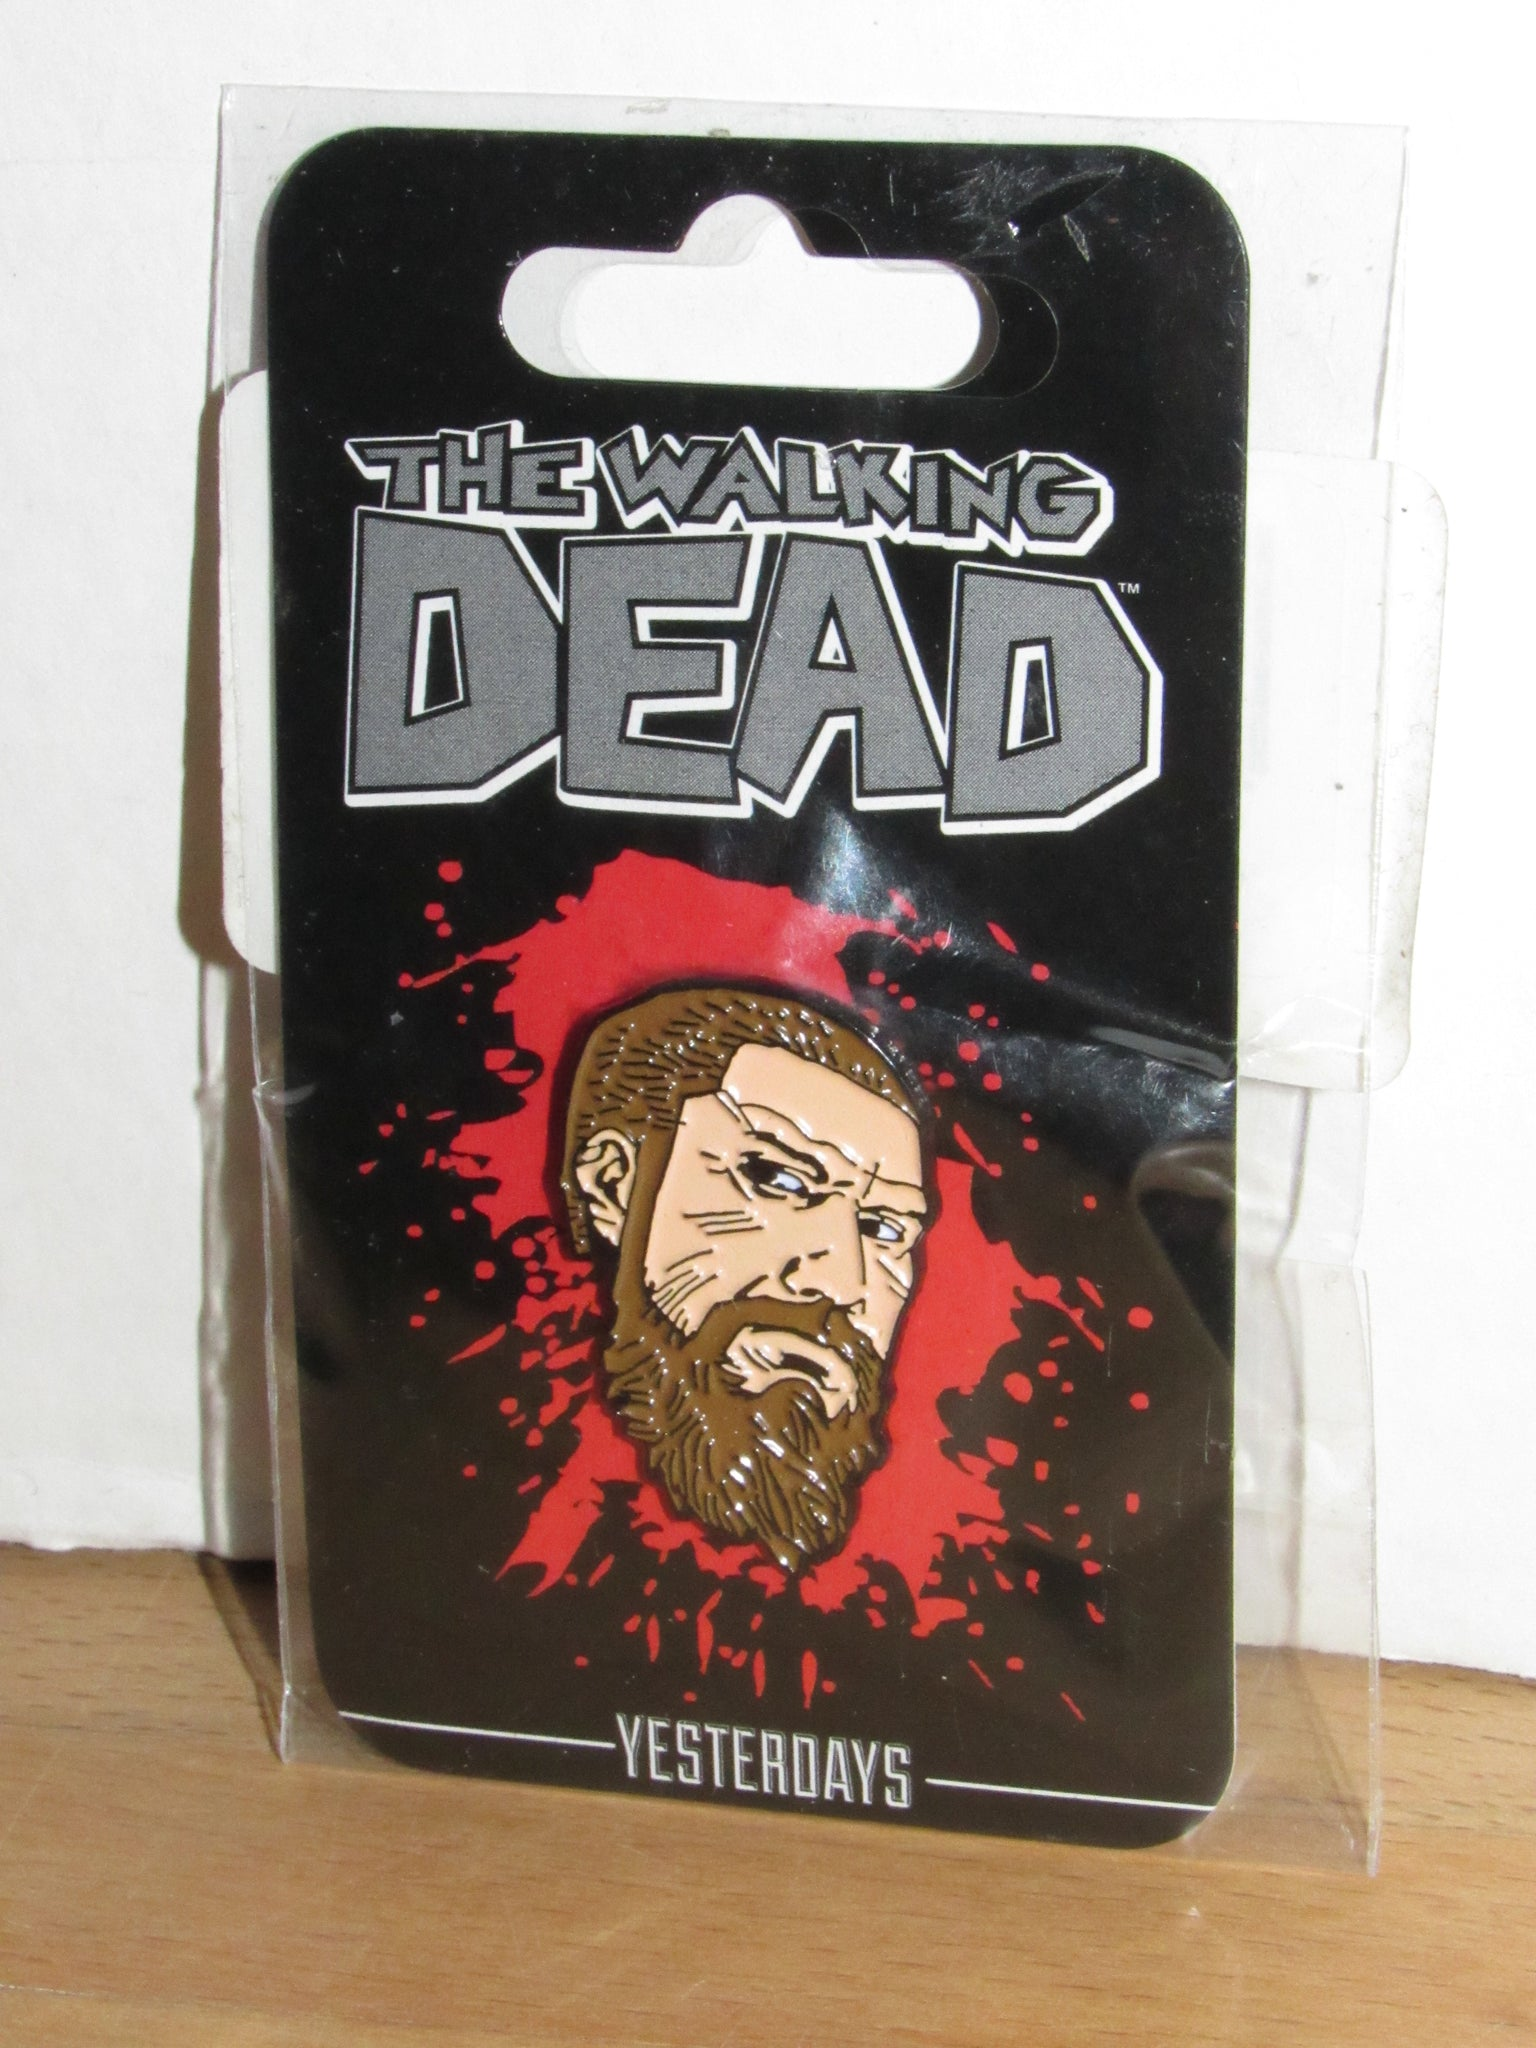 THE WALKING DEAD Old Rick Face Pin